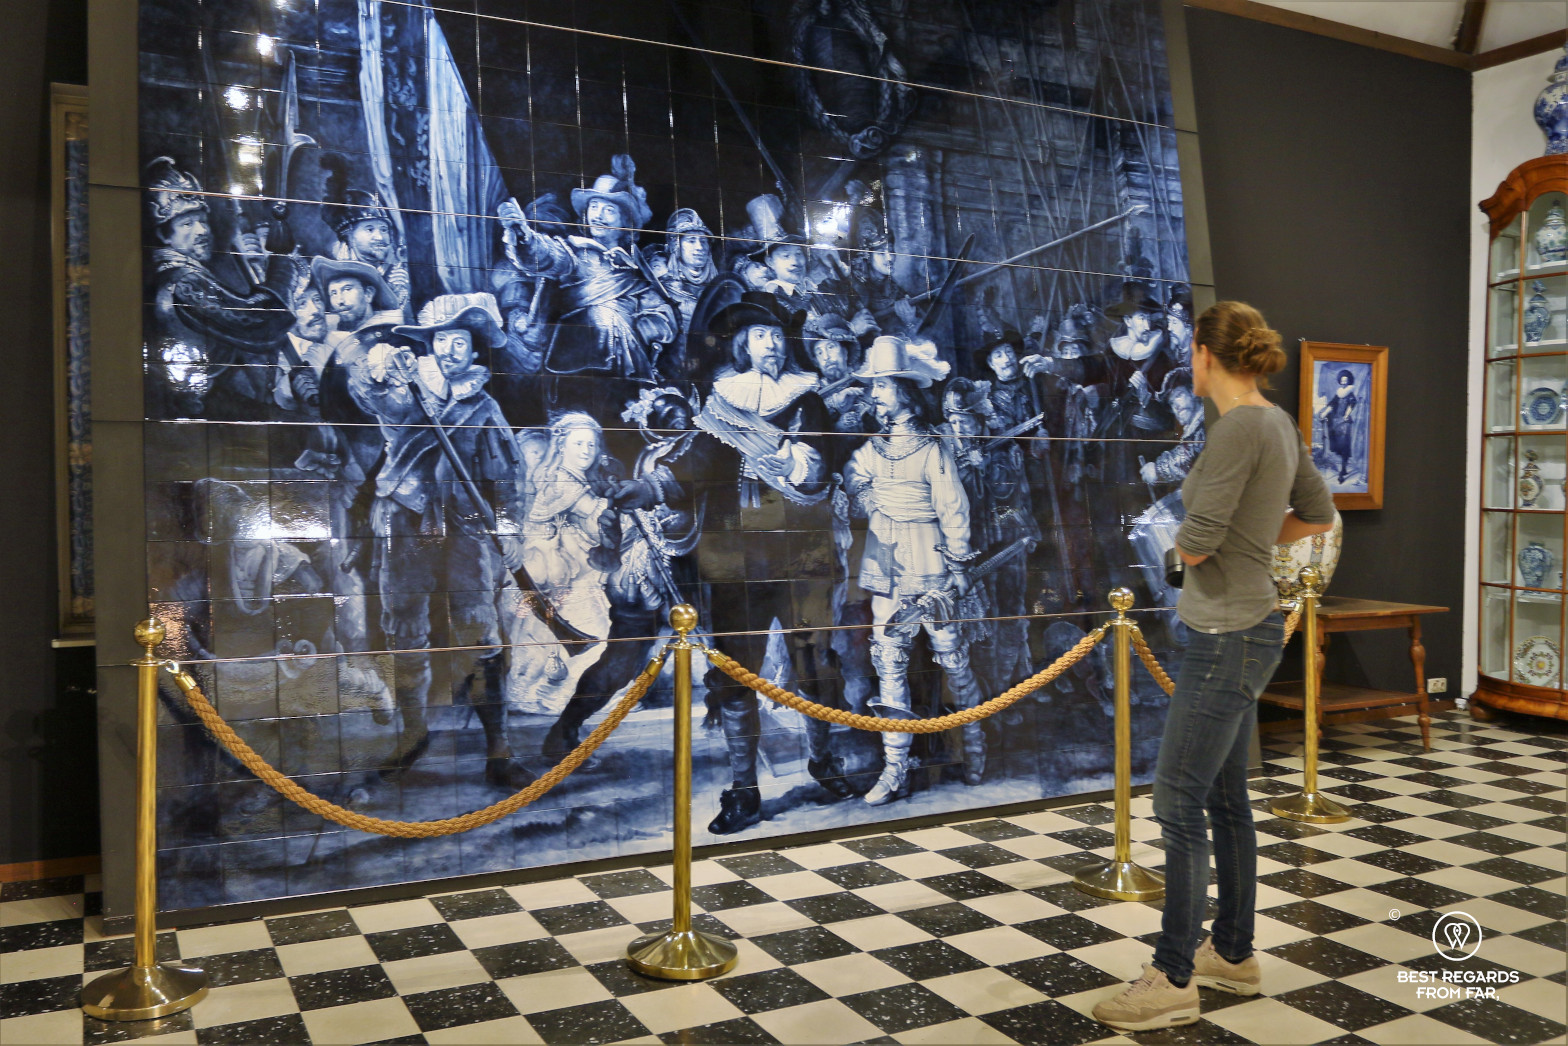 Photographer Marcella van Alphen admiring the Night Watch in Delft Blue, the Royal Delft Museum, the Netherlands